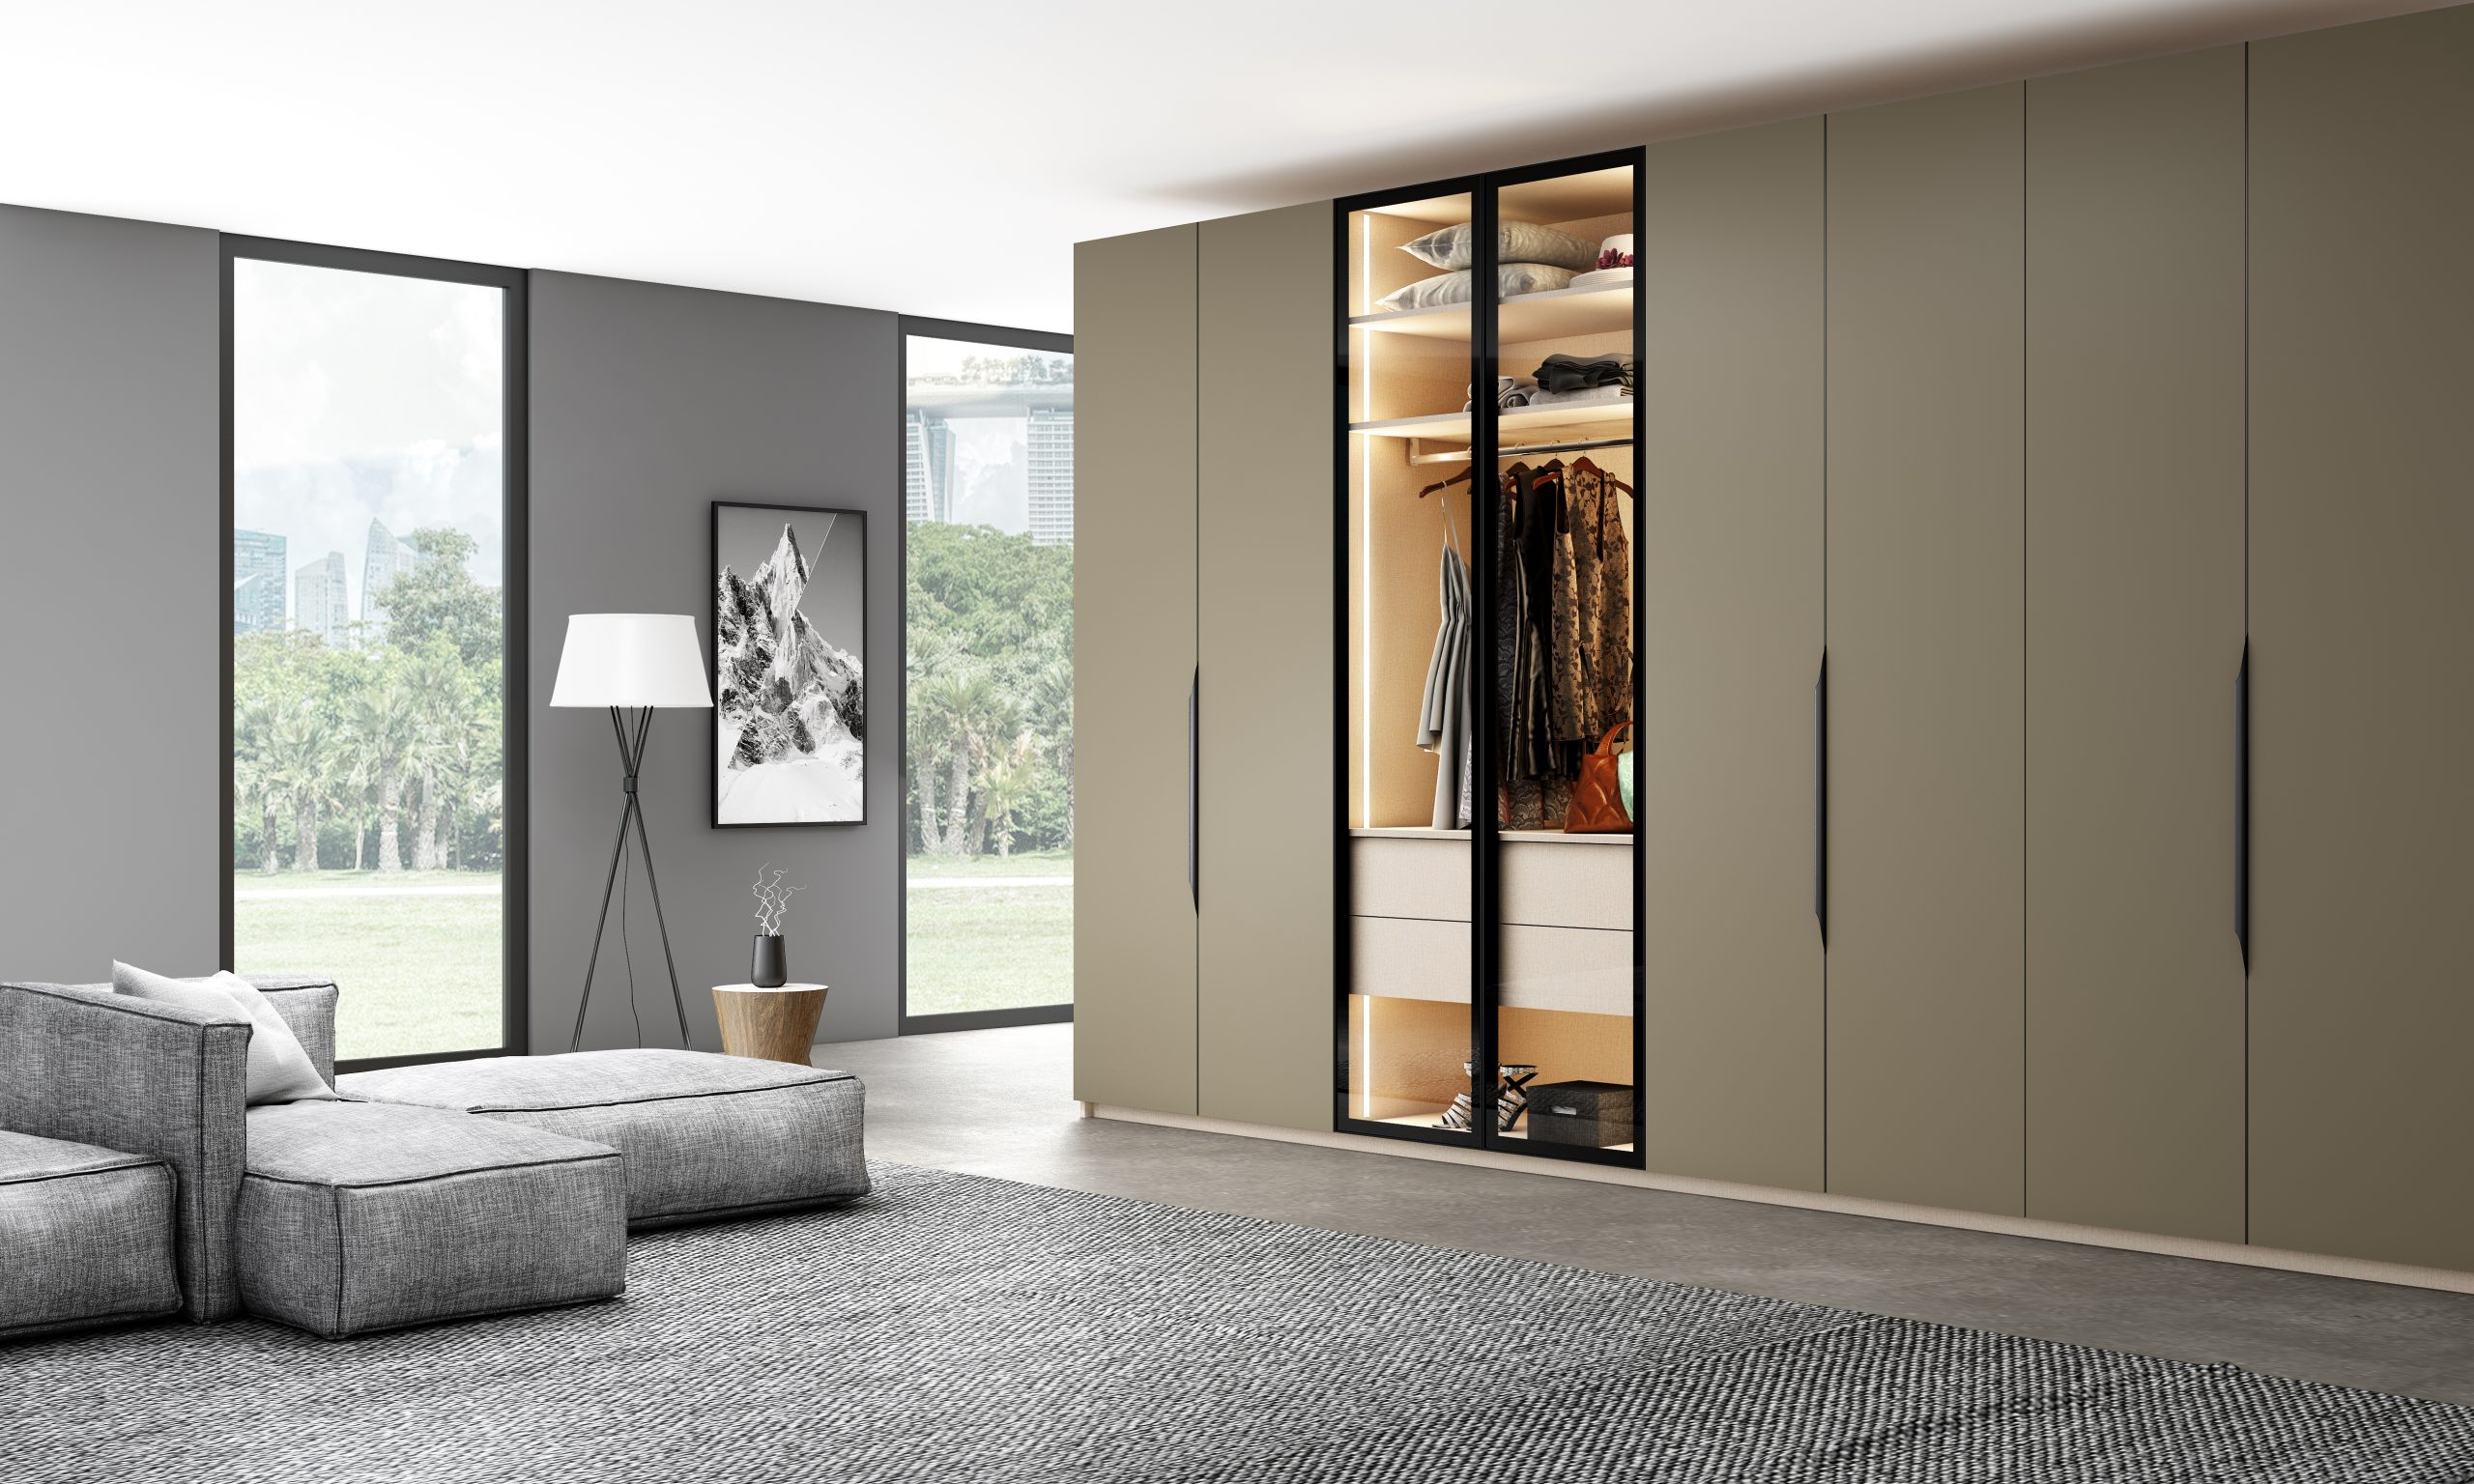 Hinged Fitted Wardrobe With Linear Glass Wardrobe in Brown-grey Finish